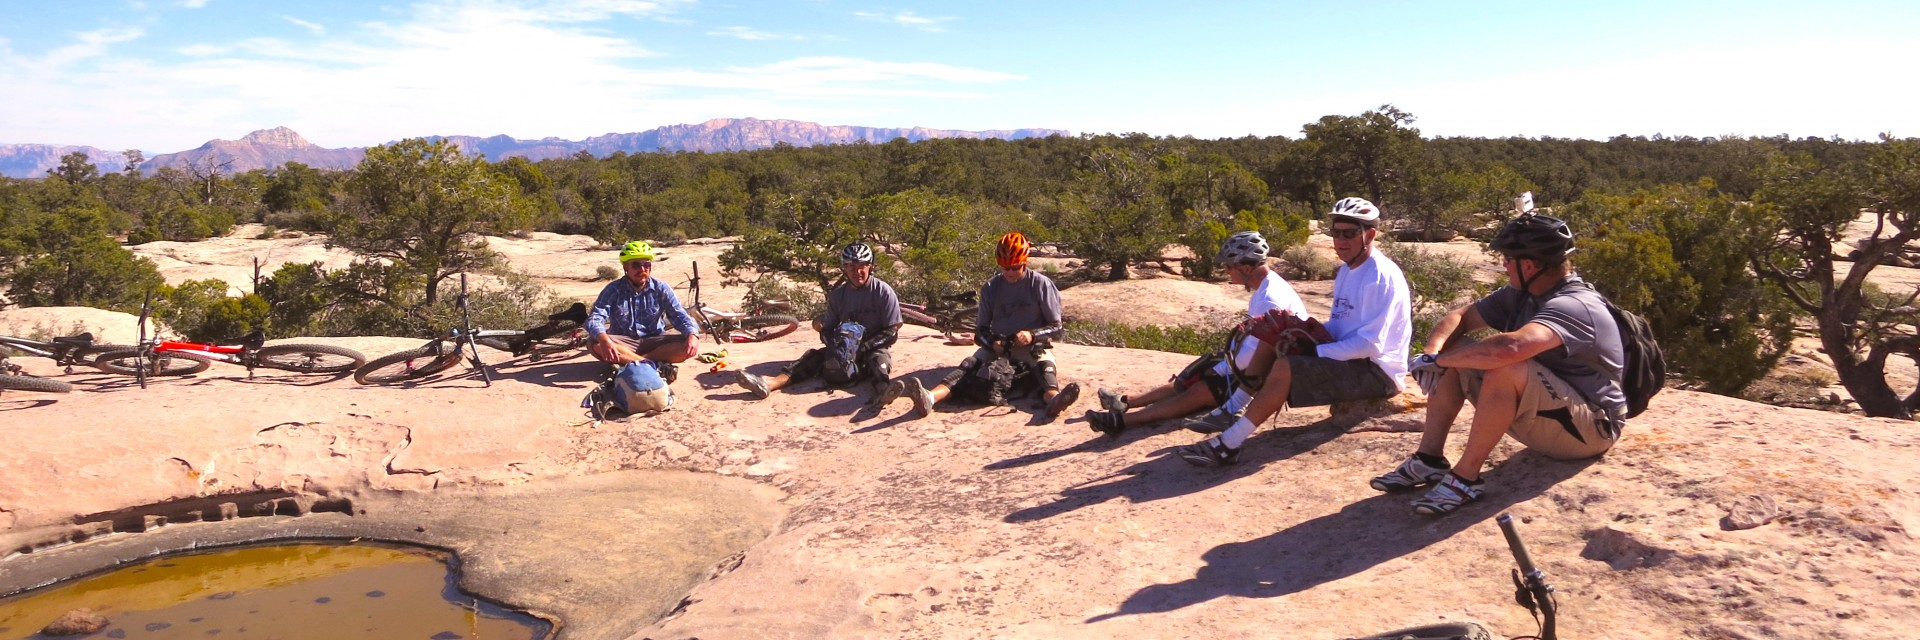 A guide explains the geology of Gooseberry Mesa during a rest stop on a guided mountain bike tour in southwestern Utah